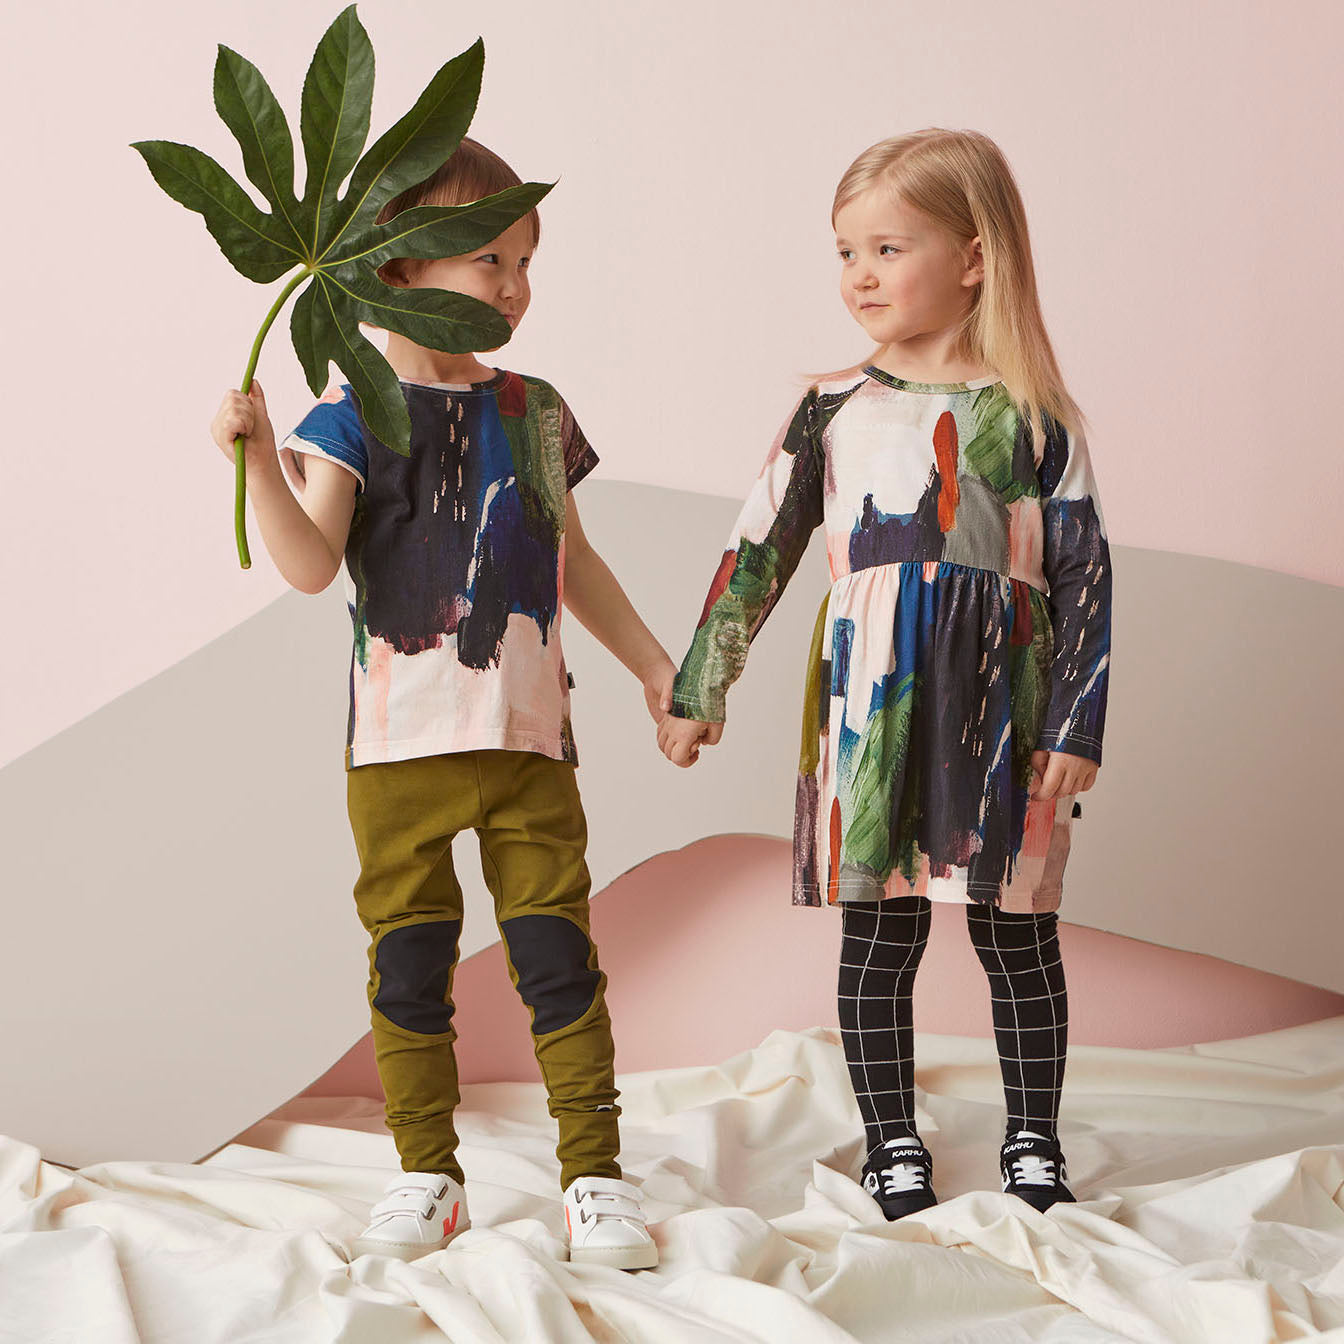 Papu Design AW2021 kid's collection sustainable fashion